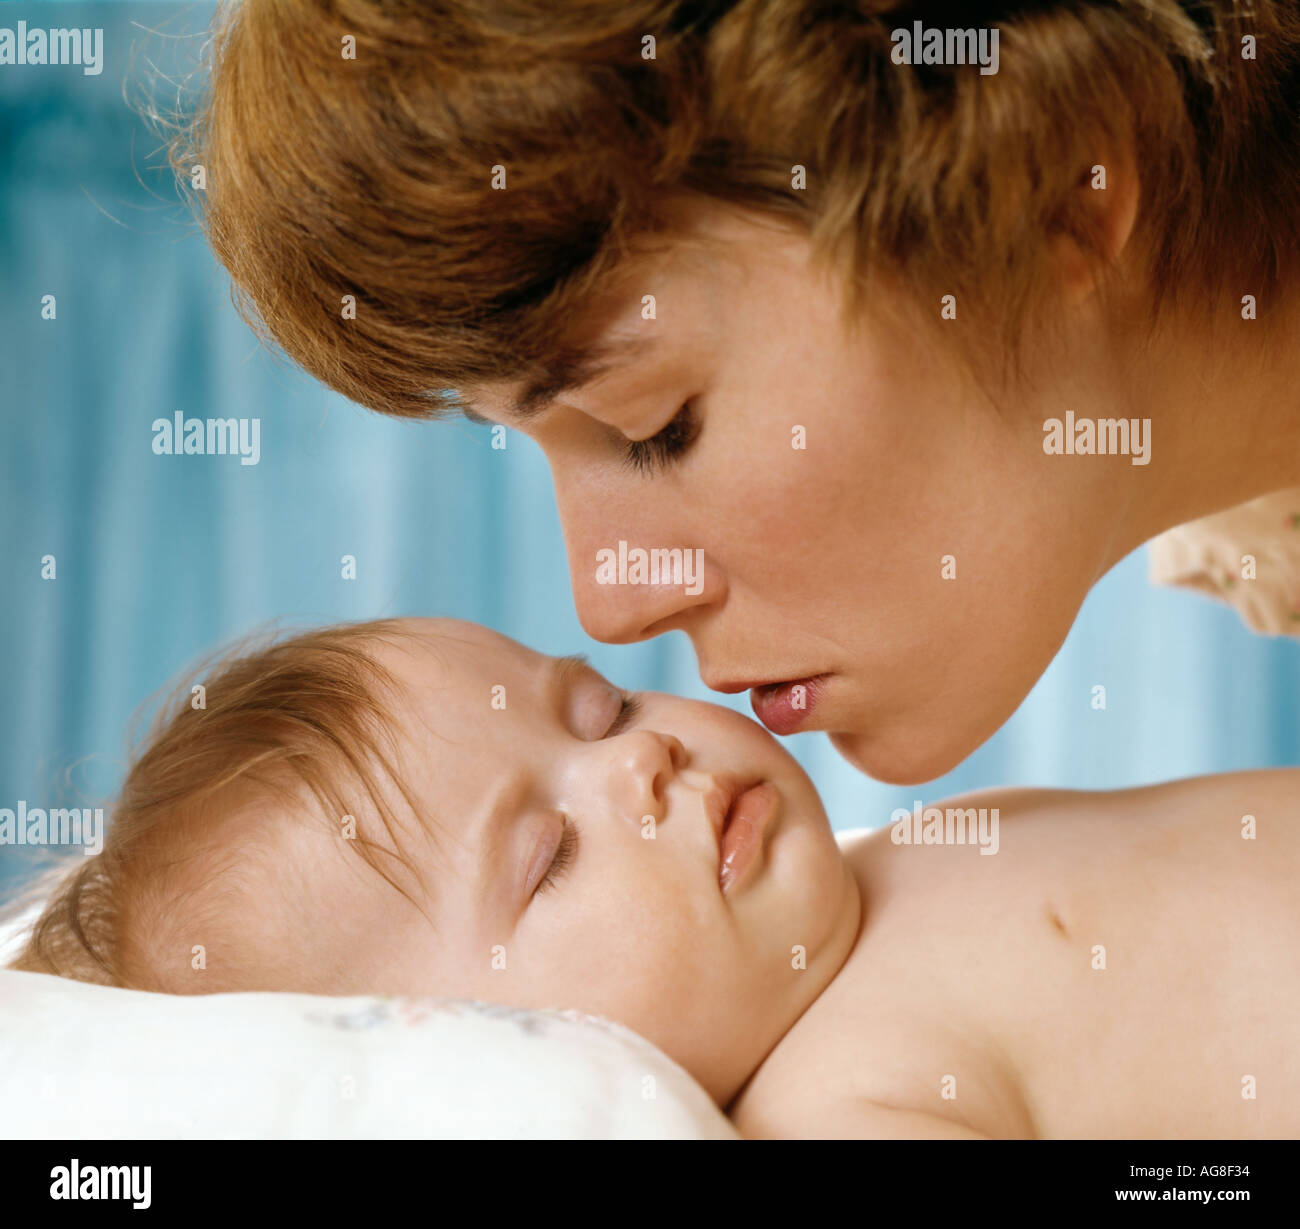 Goodnight Kiss High Resolution Stock Photography And Images Alamy